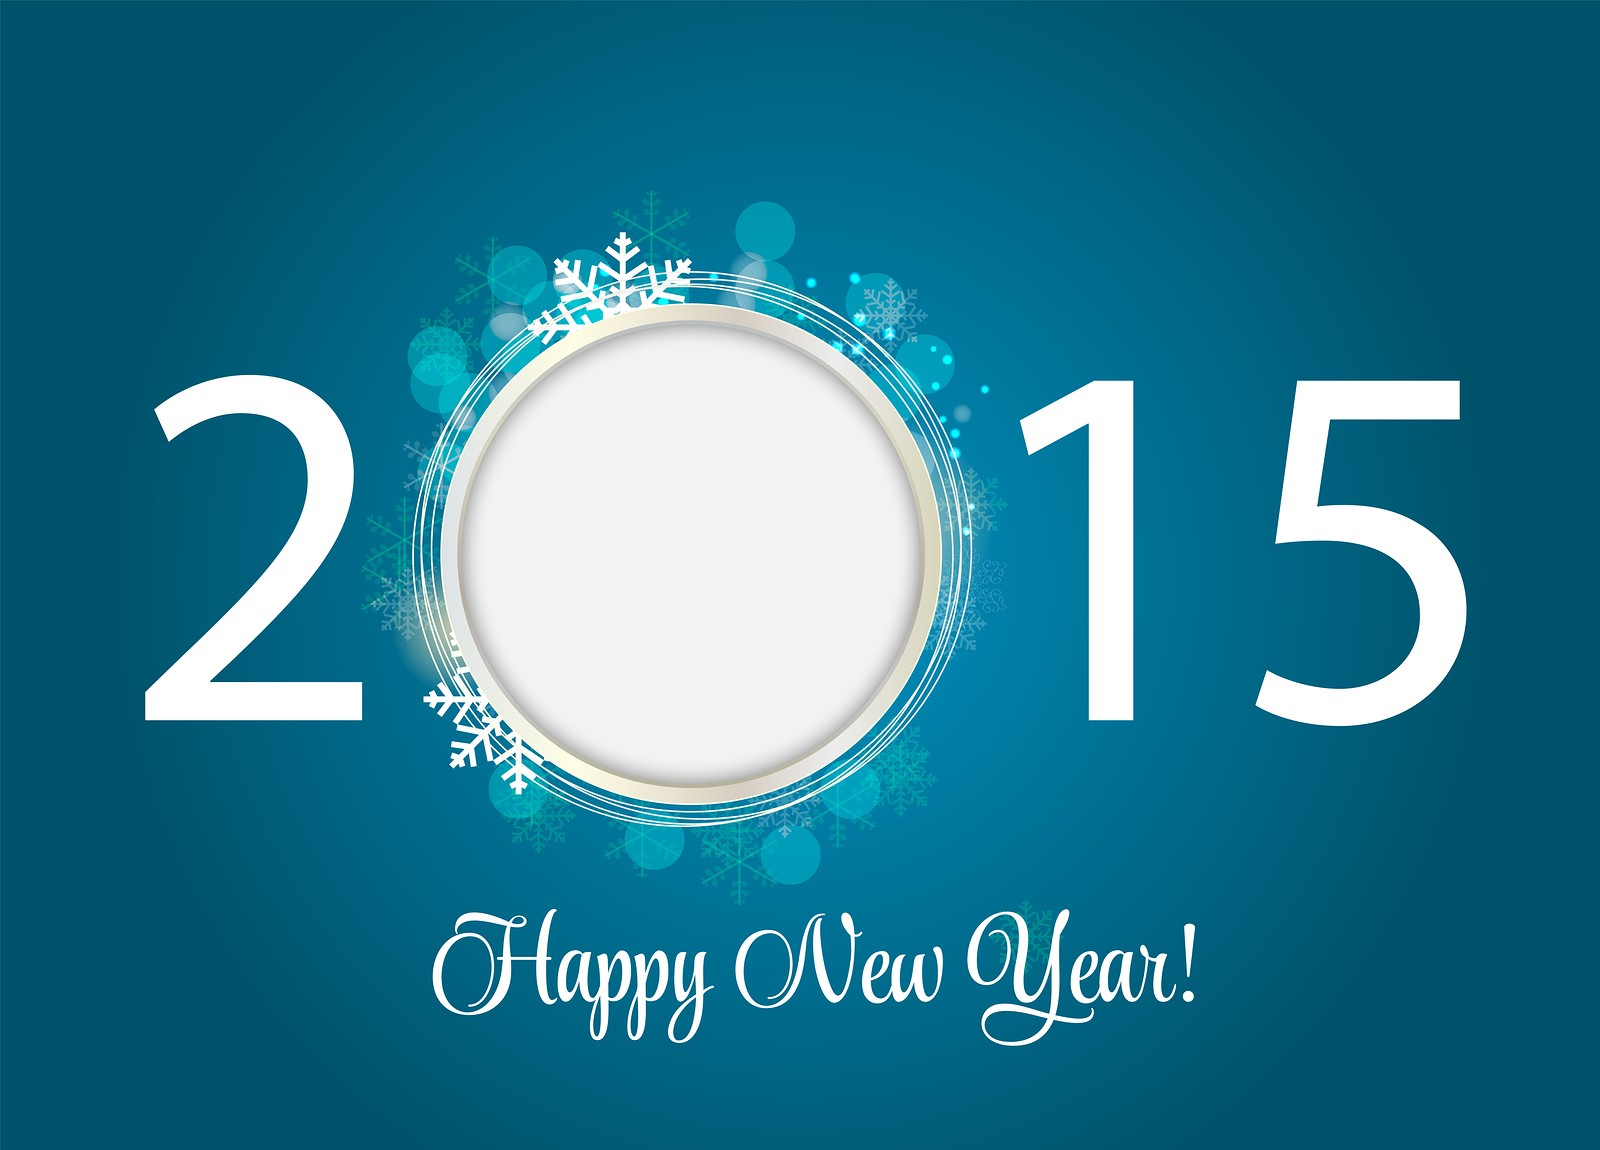 download Happy New Year 2015 Wallpapers for Windows 81 All 1600x1150